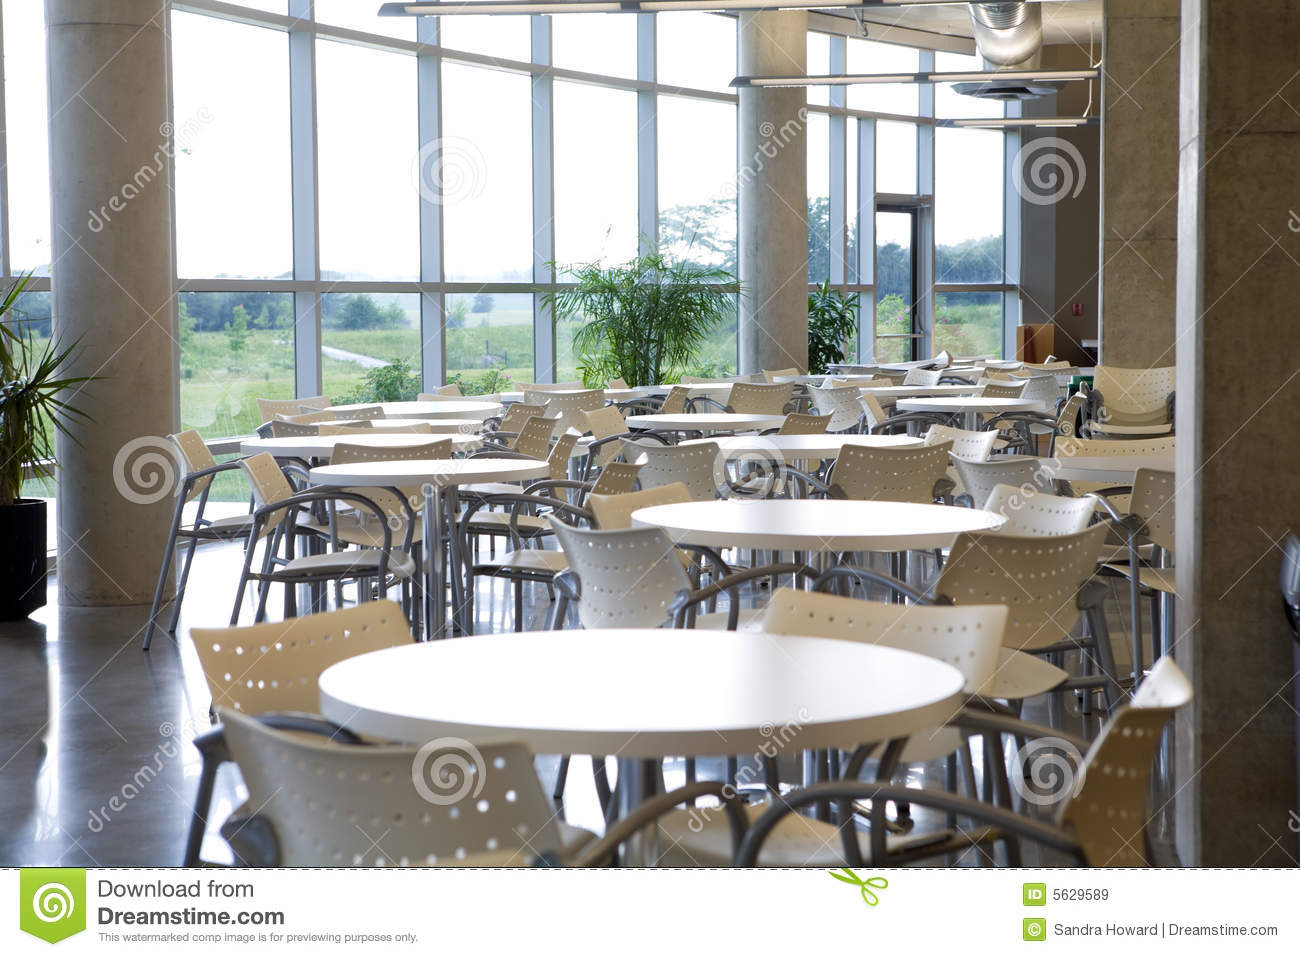 Clean cafeteria tables - Office Cafeteria Office Cafeteria With Centered Table R